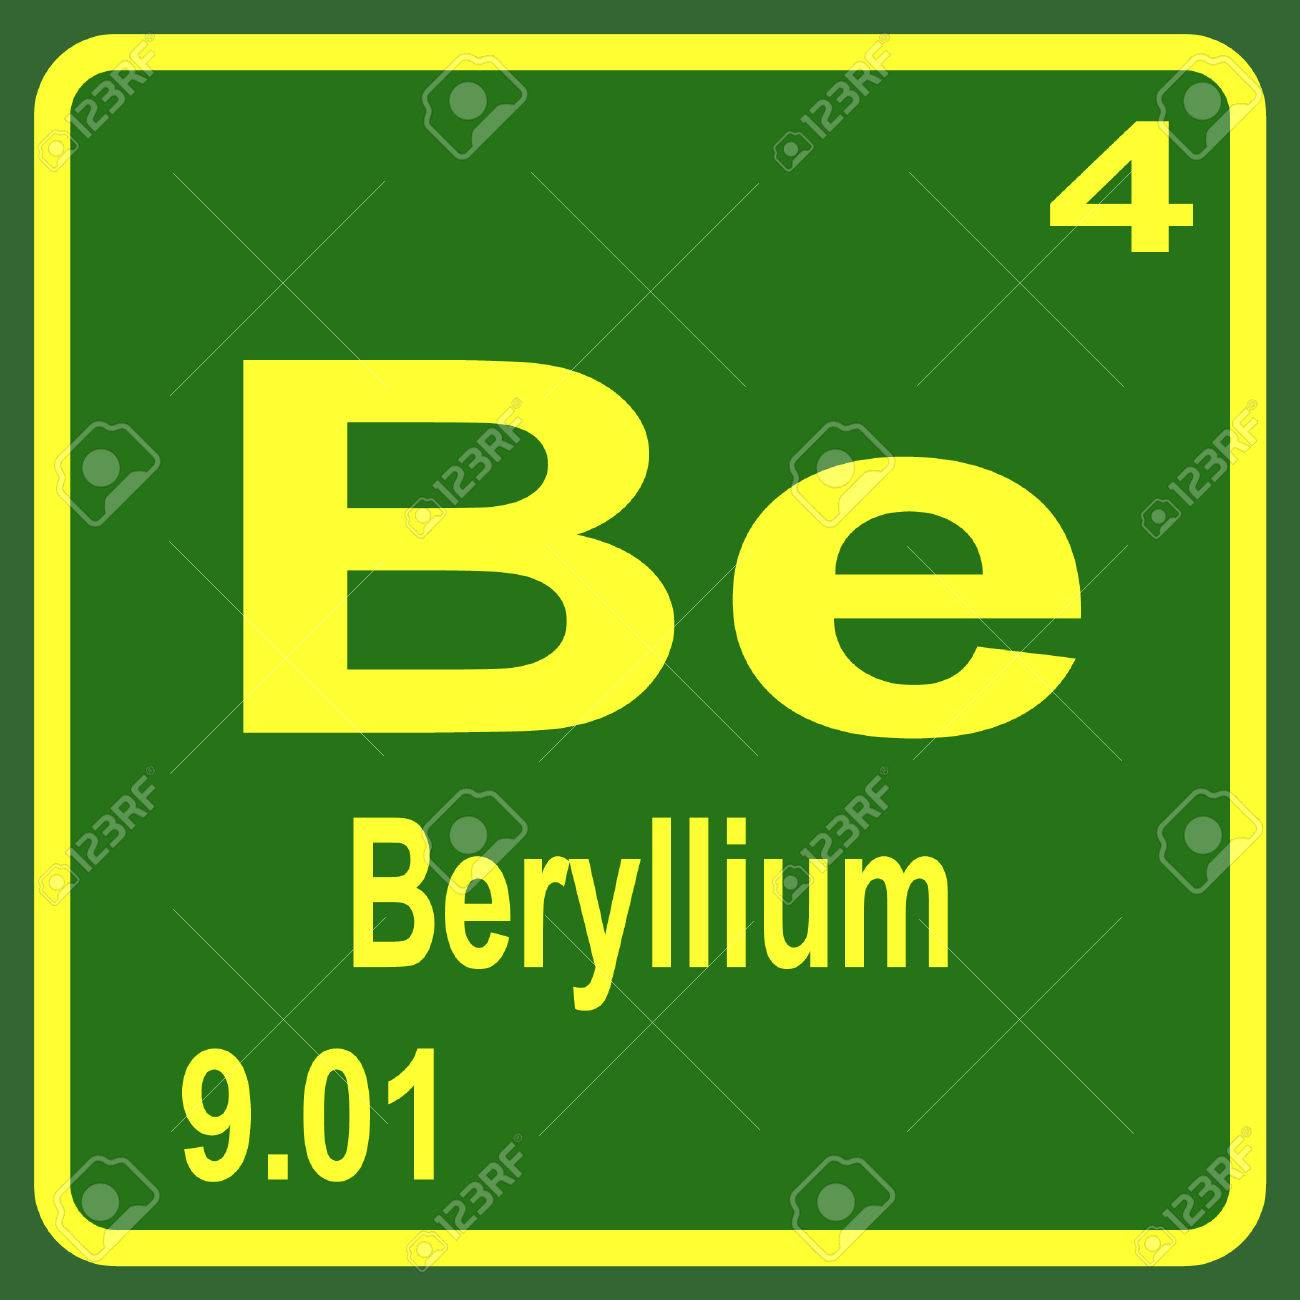 Periodic table of elements beryllium royalty free cliparts periodic table of elements beryllium stock vector 53900231 urtaz Choice Image